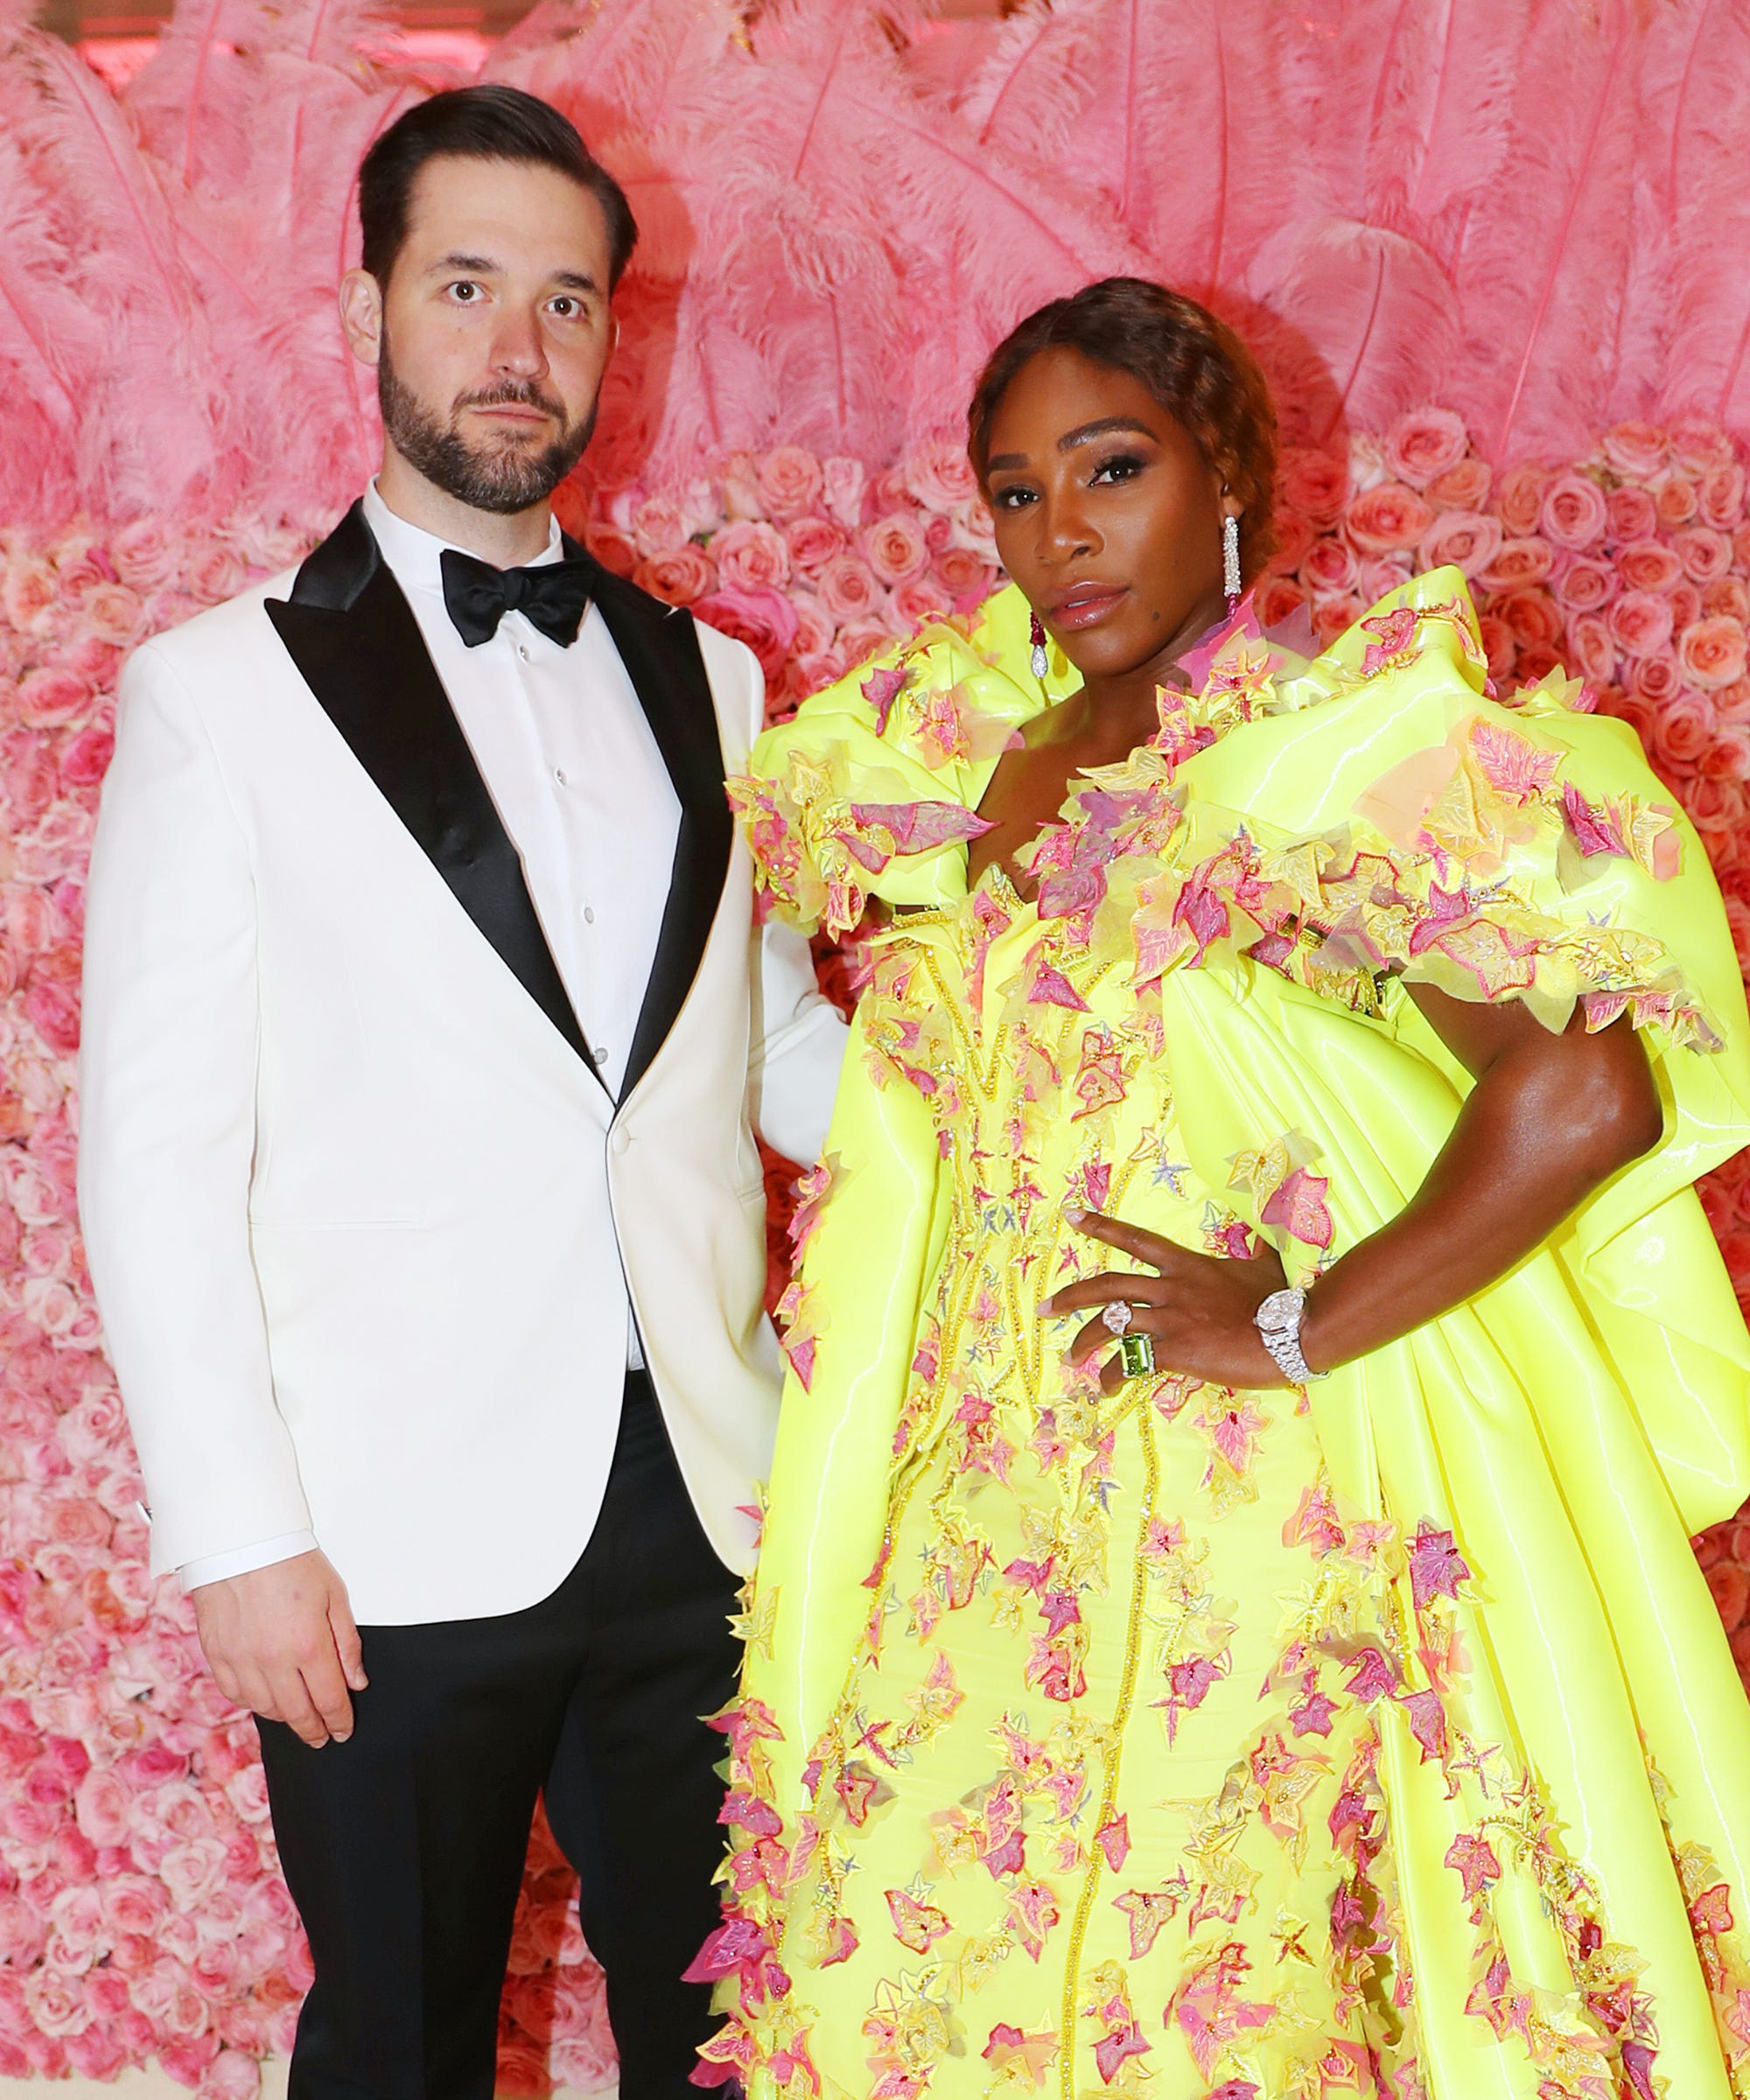 Serena Williams & Alexis Ohanian's Relationship History Is Basically A Rom-Com